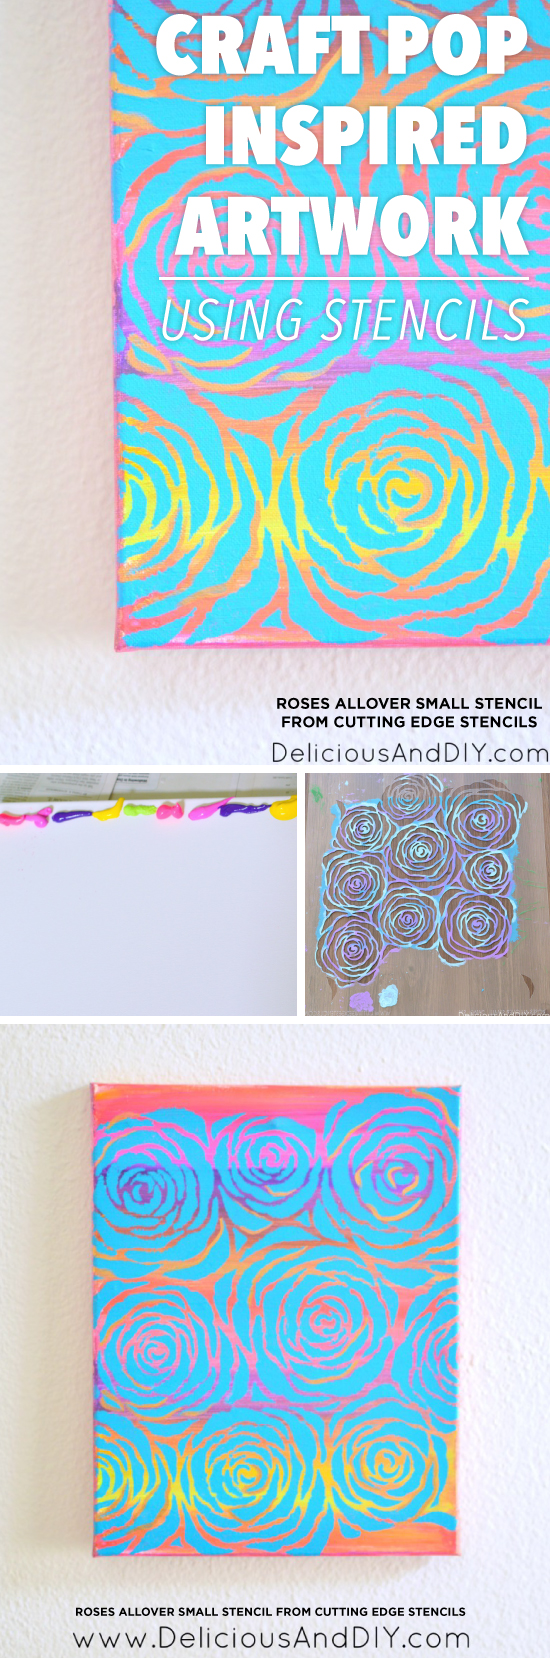 Cutting Edge Stencils shares how to craft Pop Art inspired artwork using our Roses Wall Stencil. http://www.cuttingedgestencils.com/roses-stencil-pattern-rose-design.html